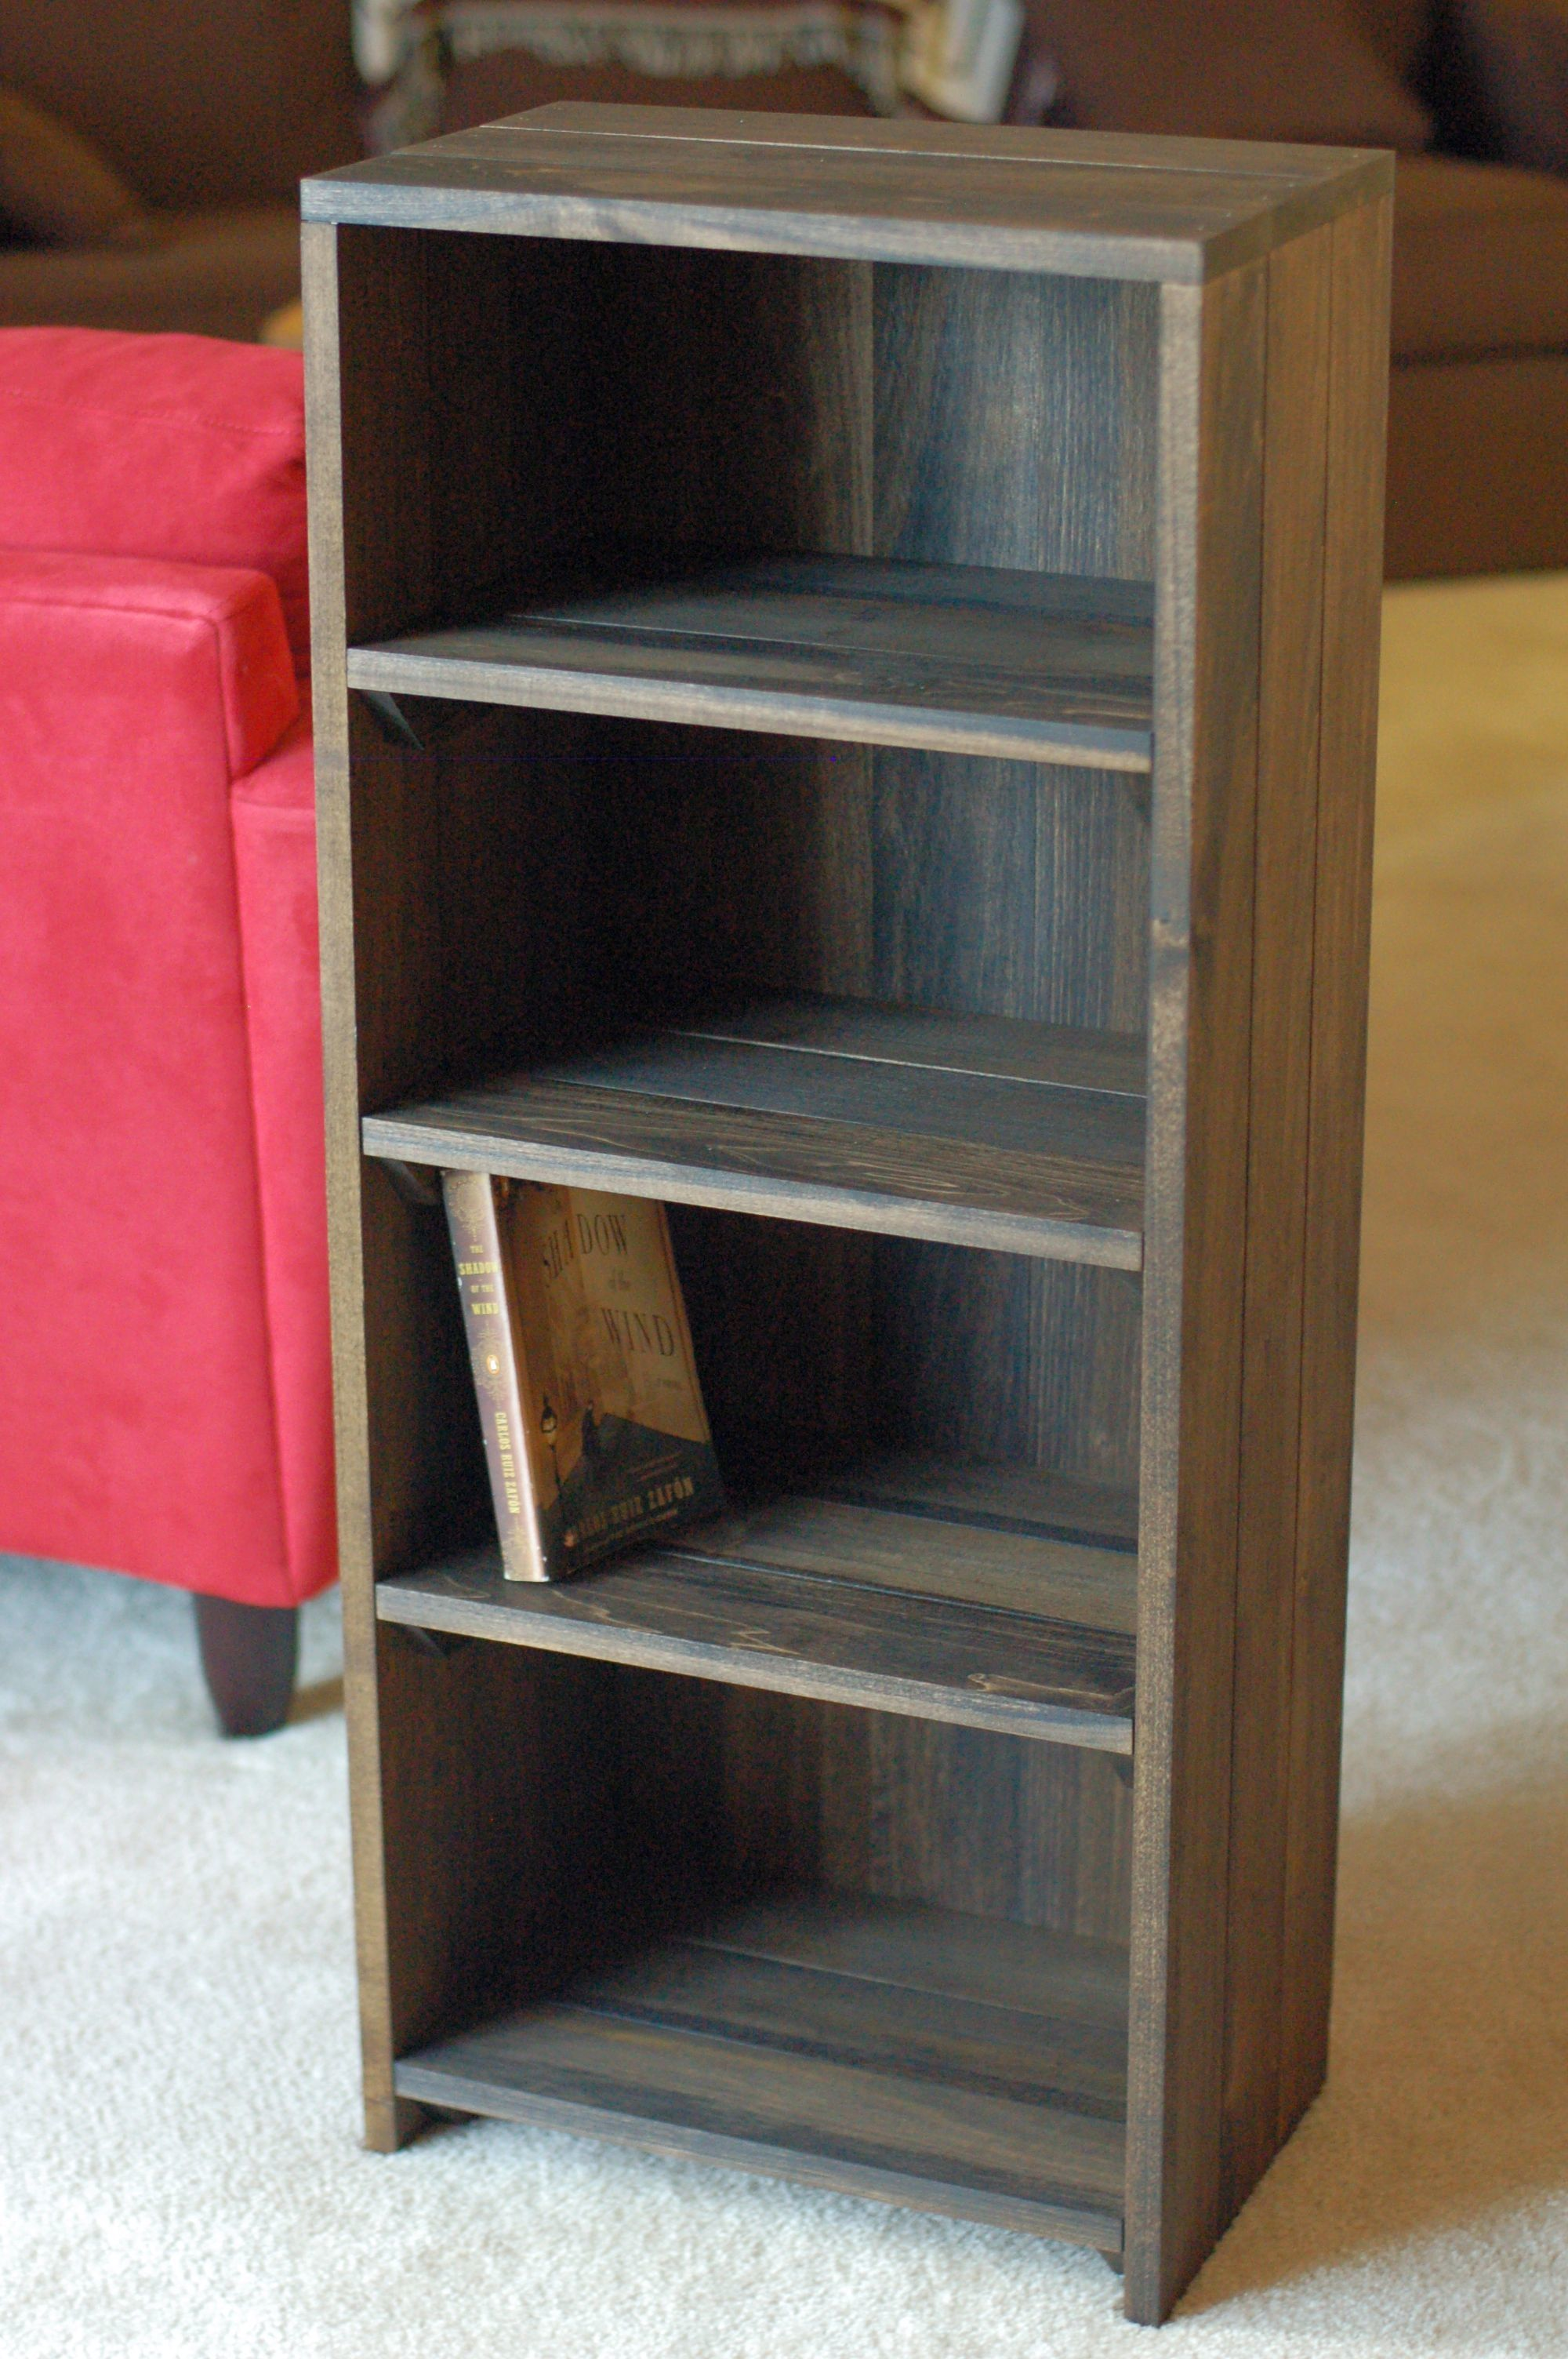 Awesome Homemade Bookshelves With Homemade Bookcase | DIY ...